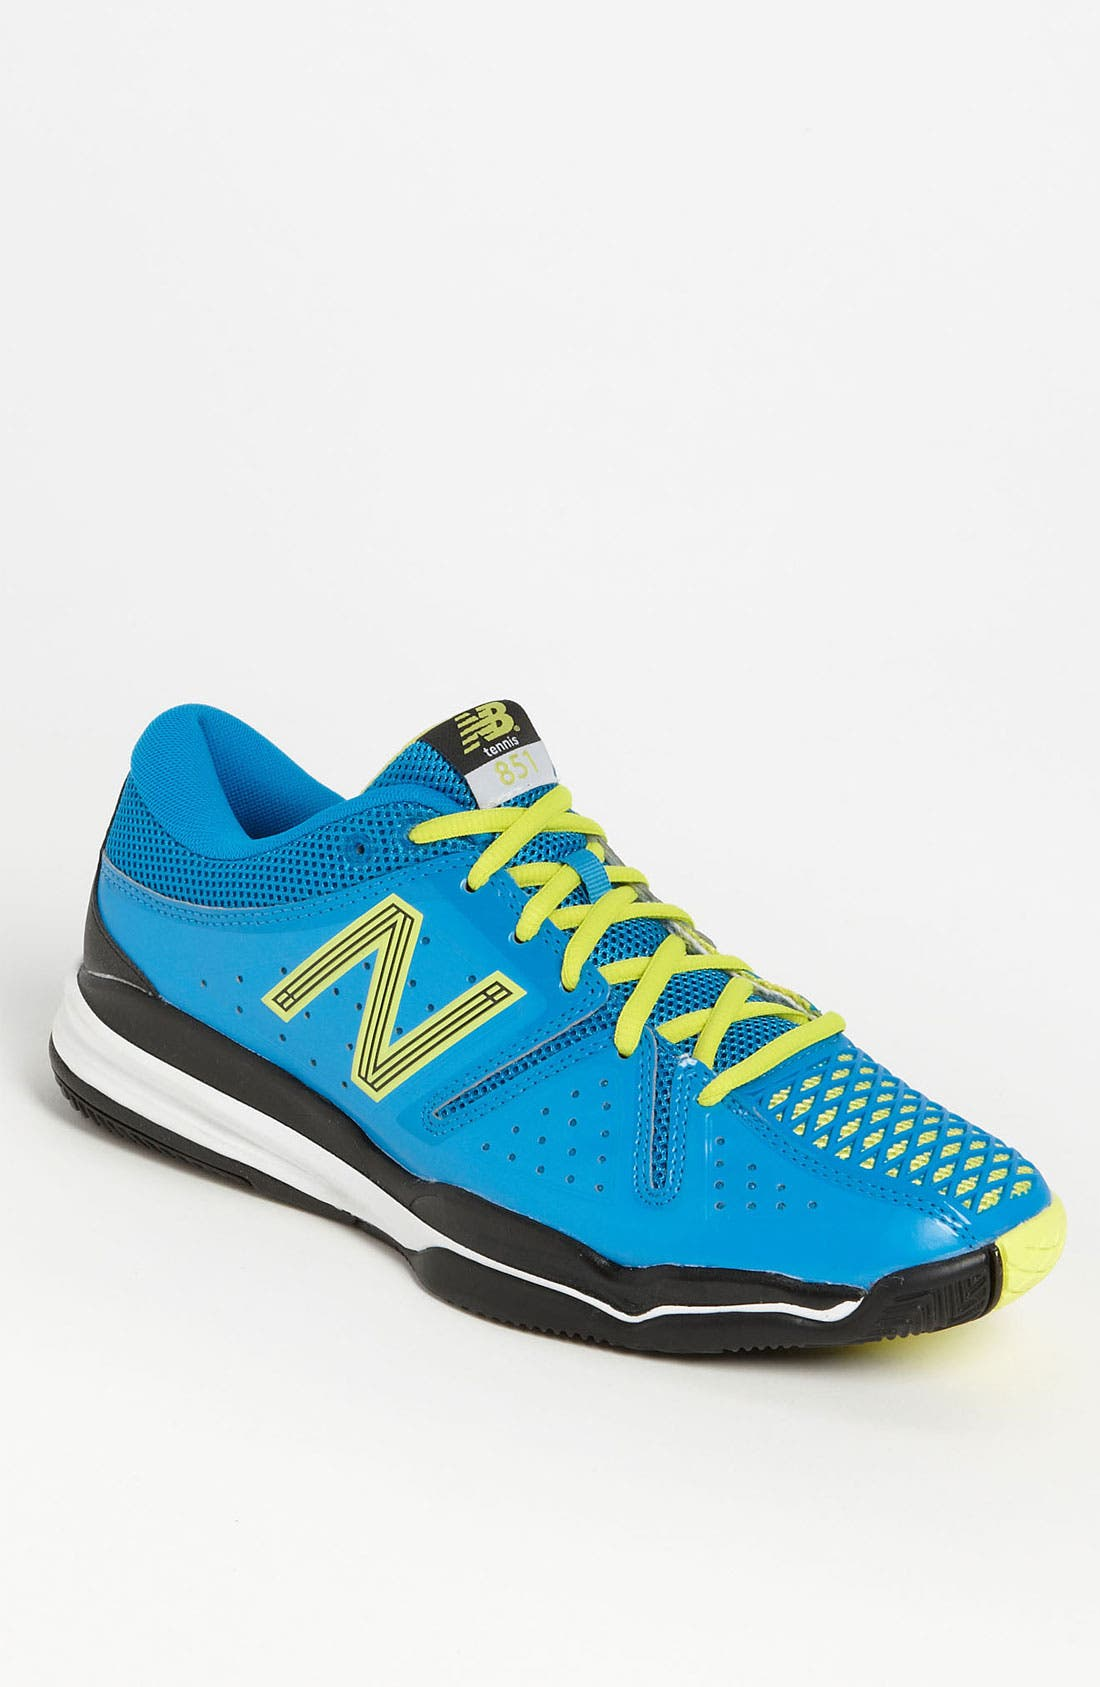 Alternate Image 1 Selected - New Balance '851' Tennis Shoe (Men)